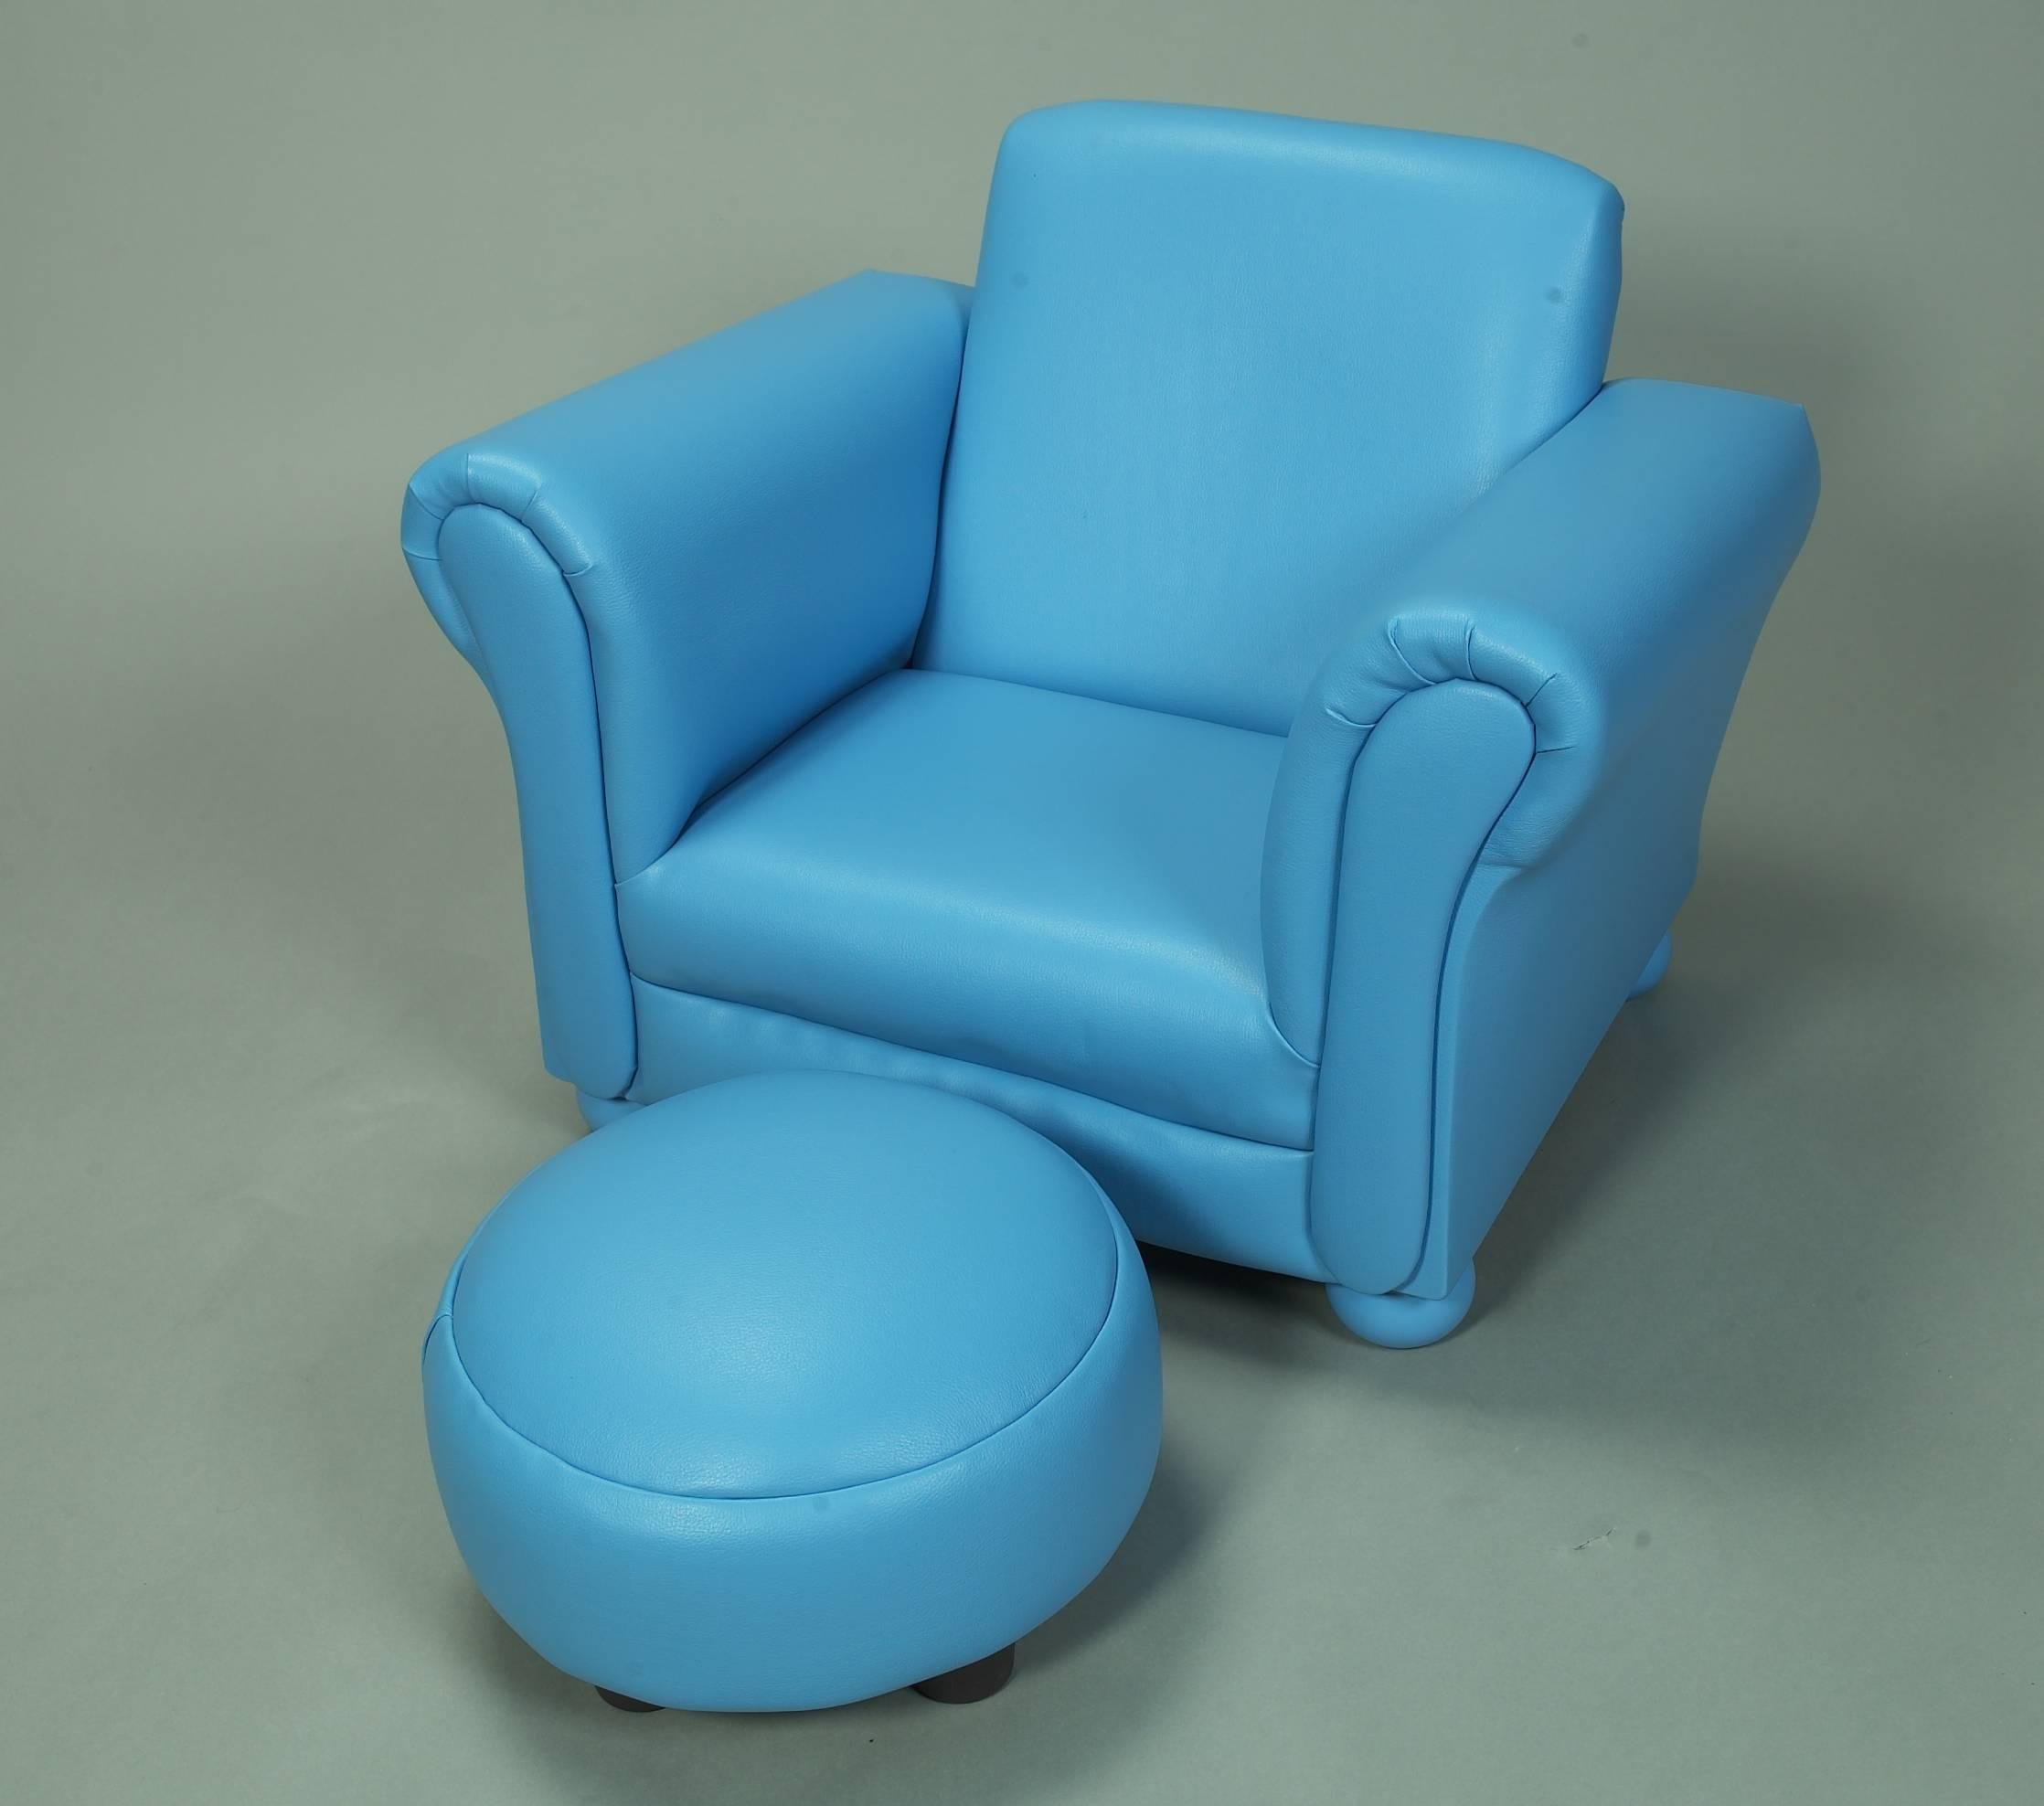 Gift Mark Child's Upholstered Chair with Ottoman, Blue